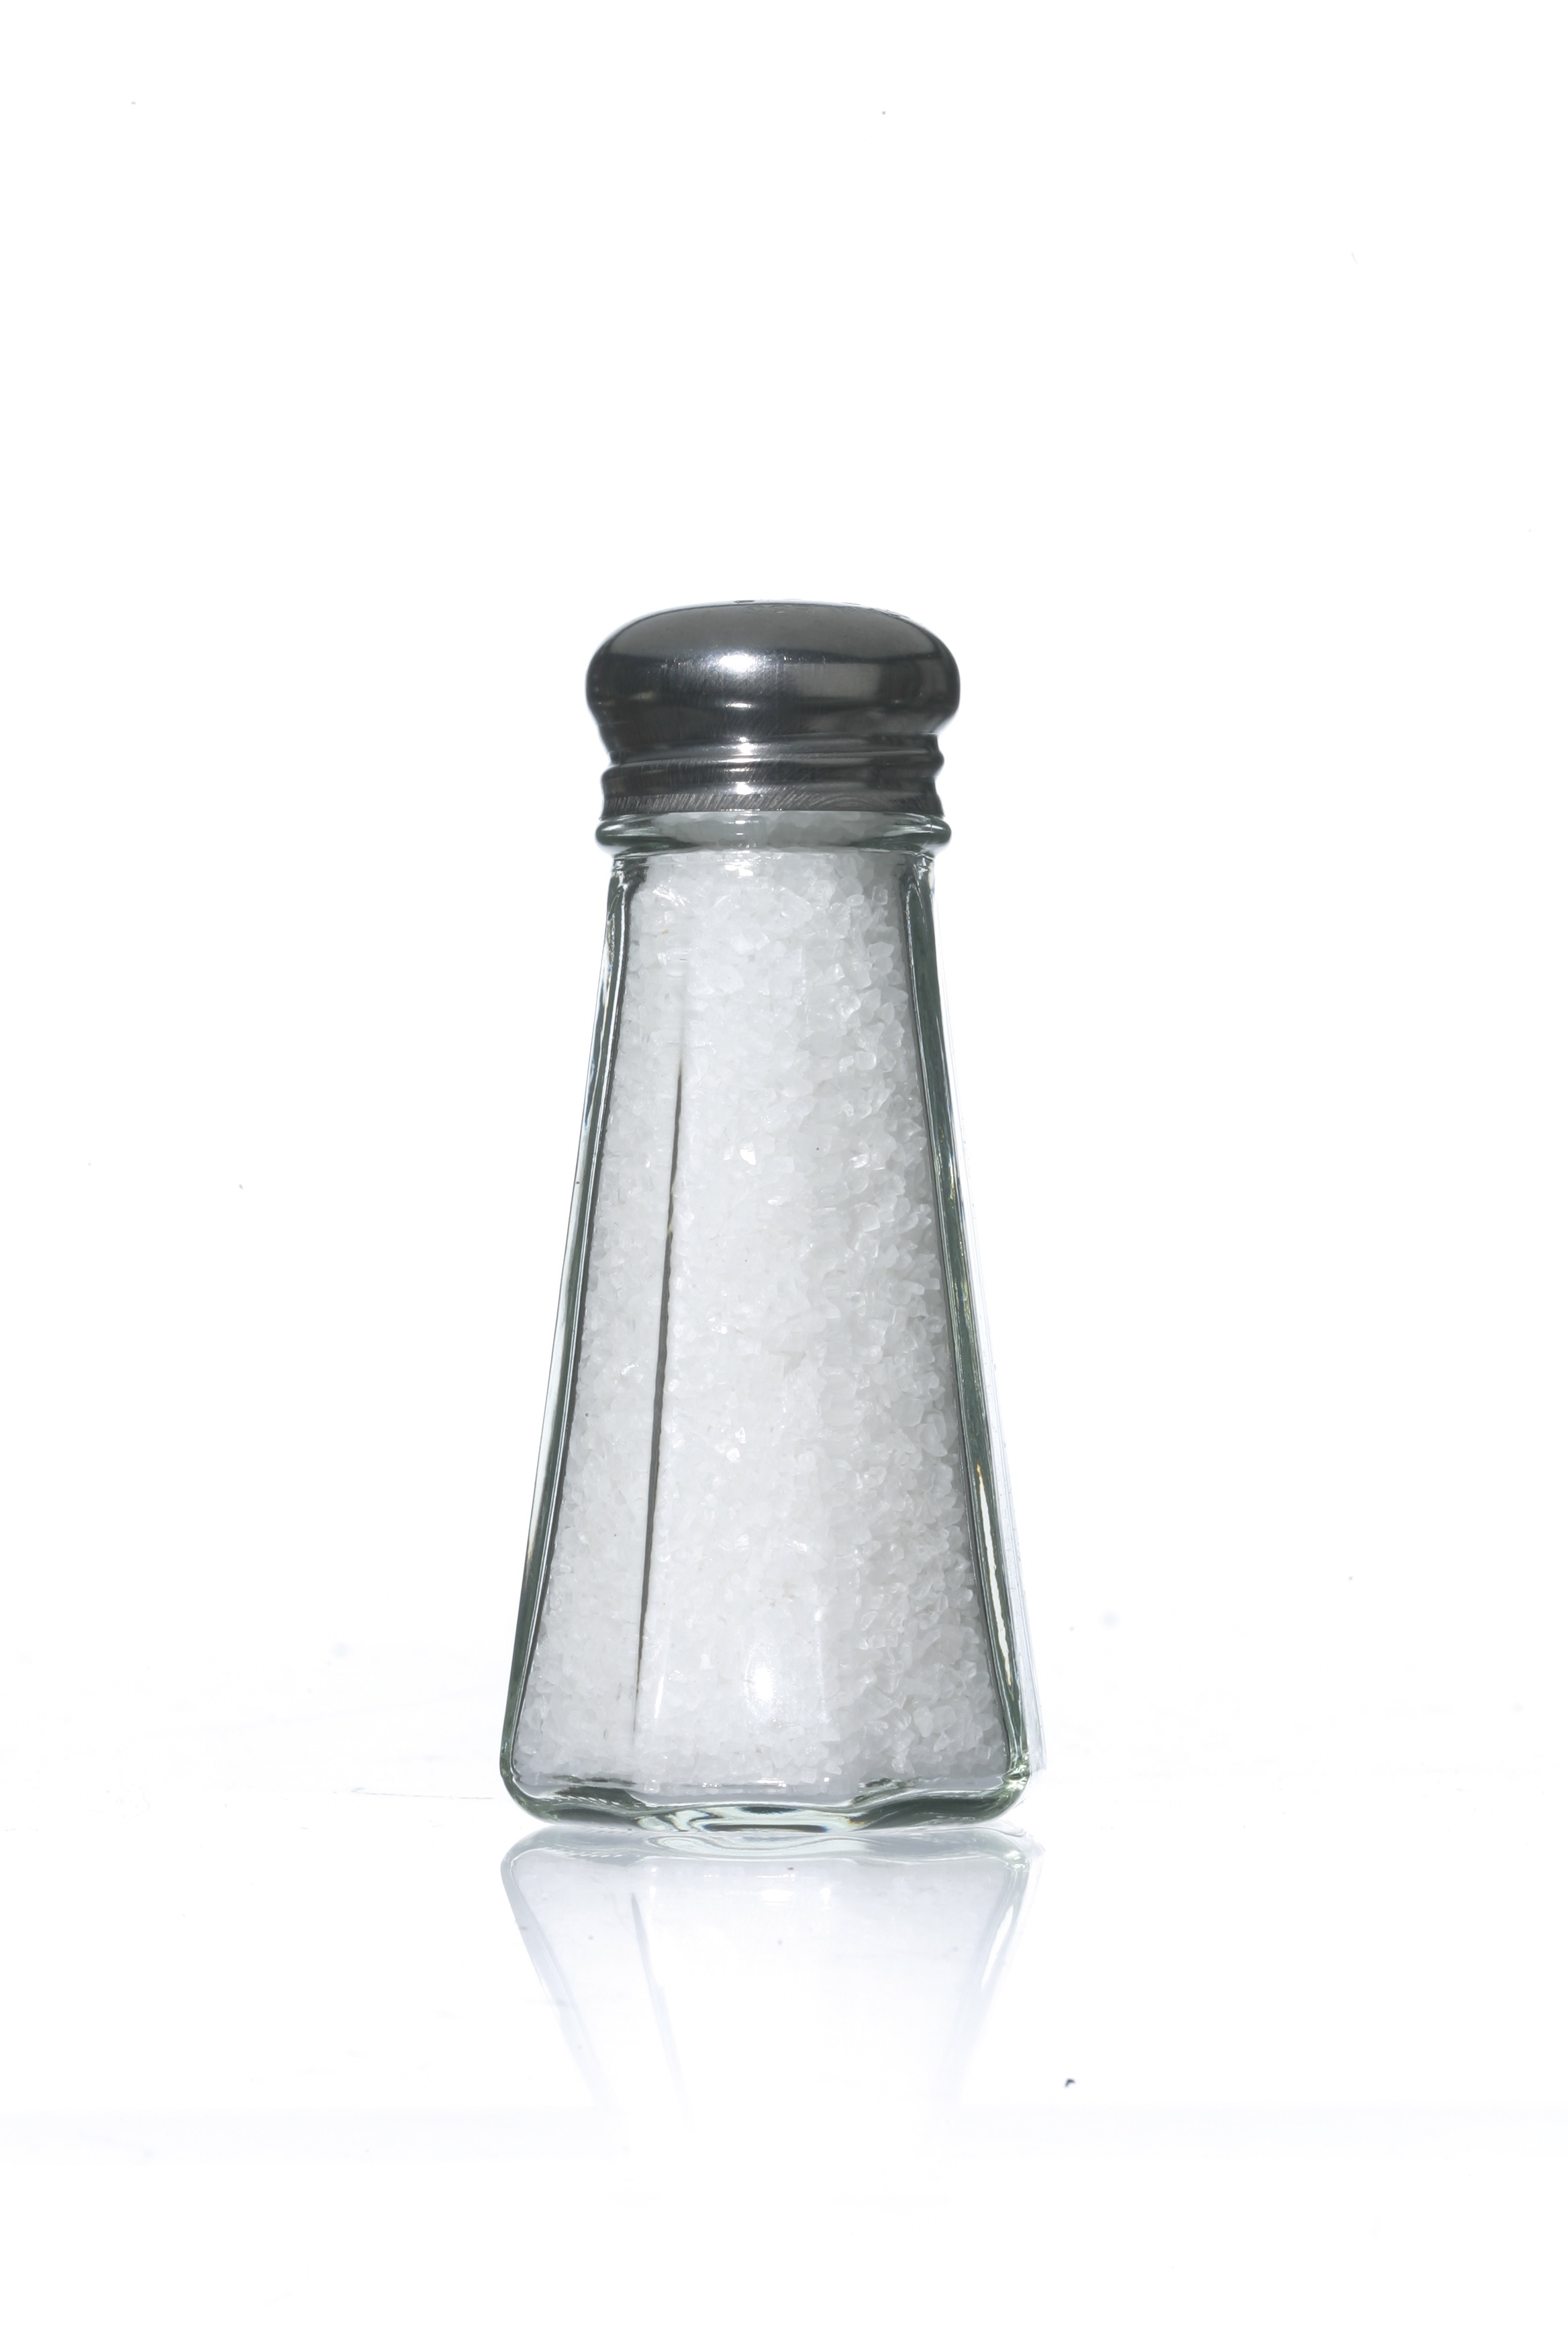 Swearing off table salt in favor of sea salt won'??t have much effect on your overall sodium intake. What really makes a difference is cutting down on processed foods.